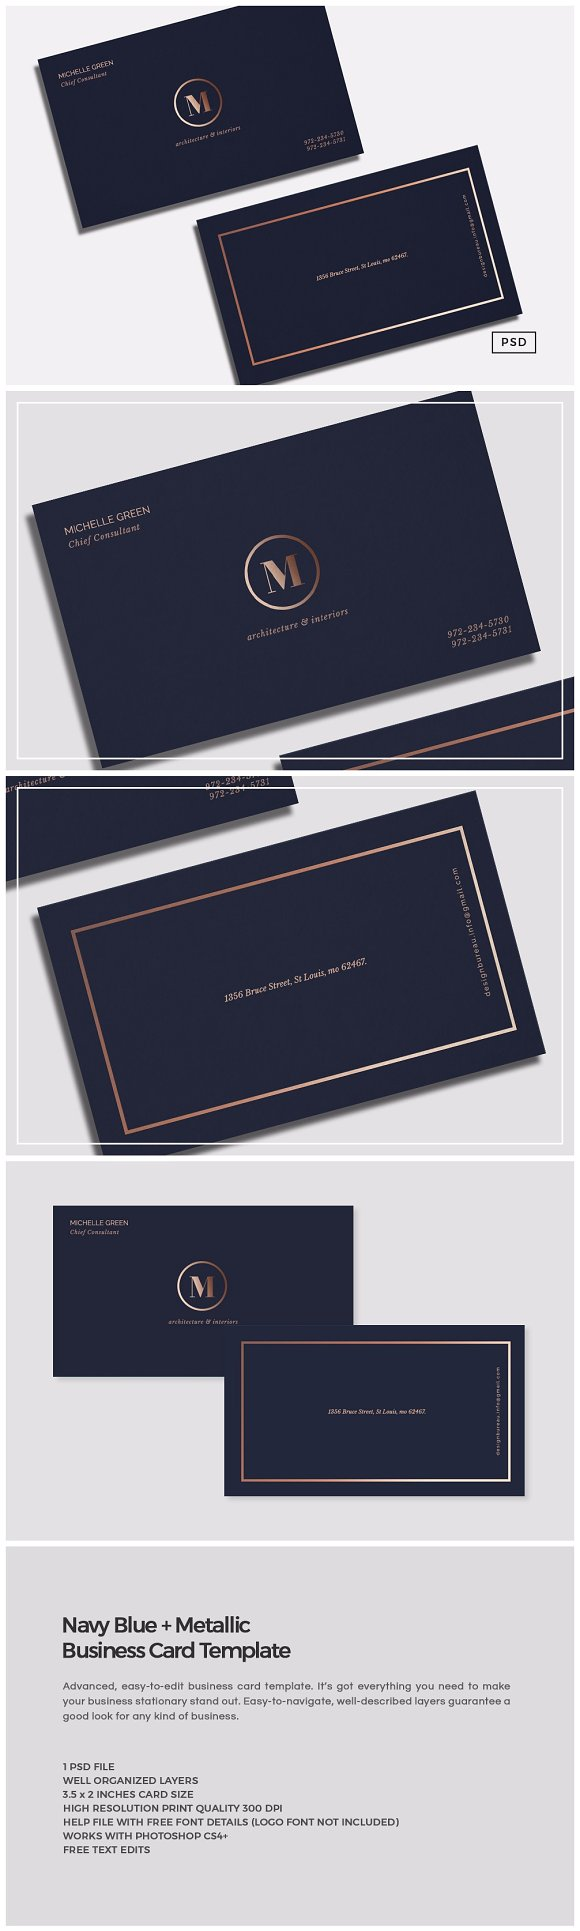 Navy blue metallic business card business card templates navy blue metallic business card business card templates creative market cheaphphosting Choice Image